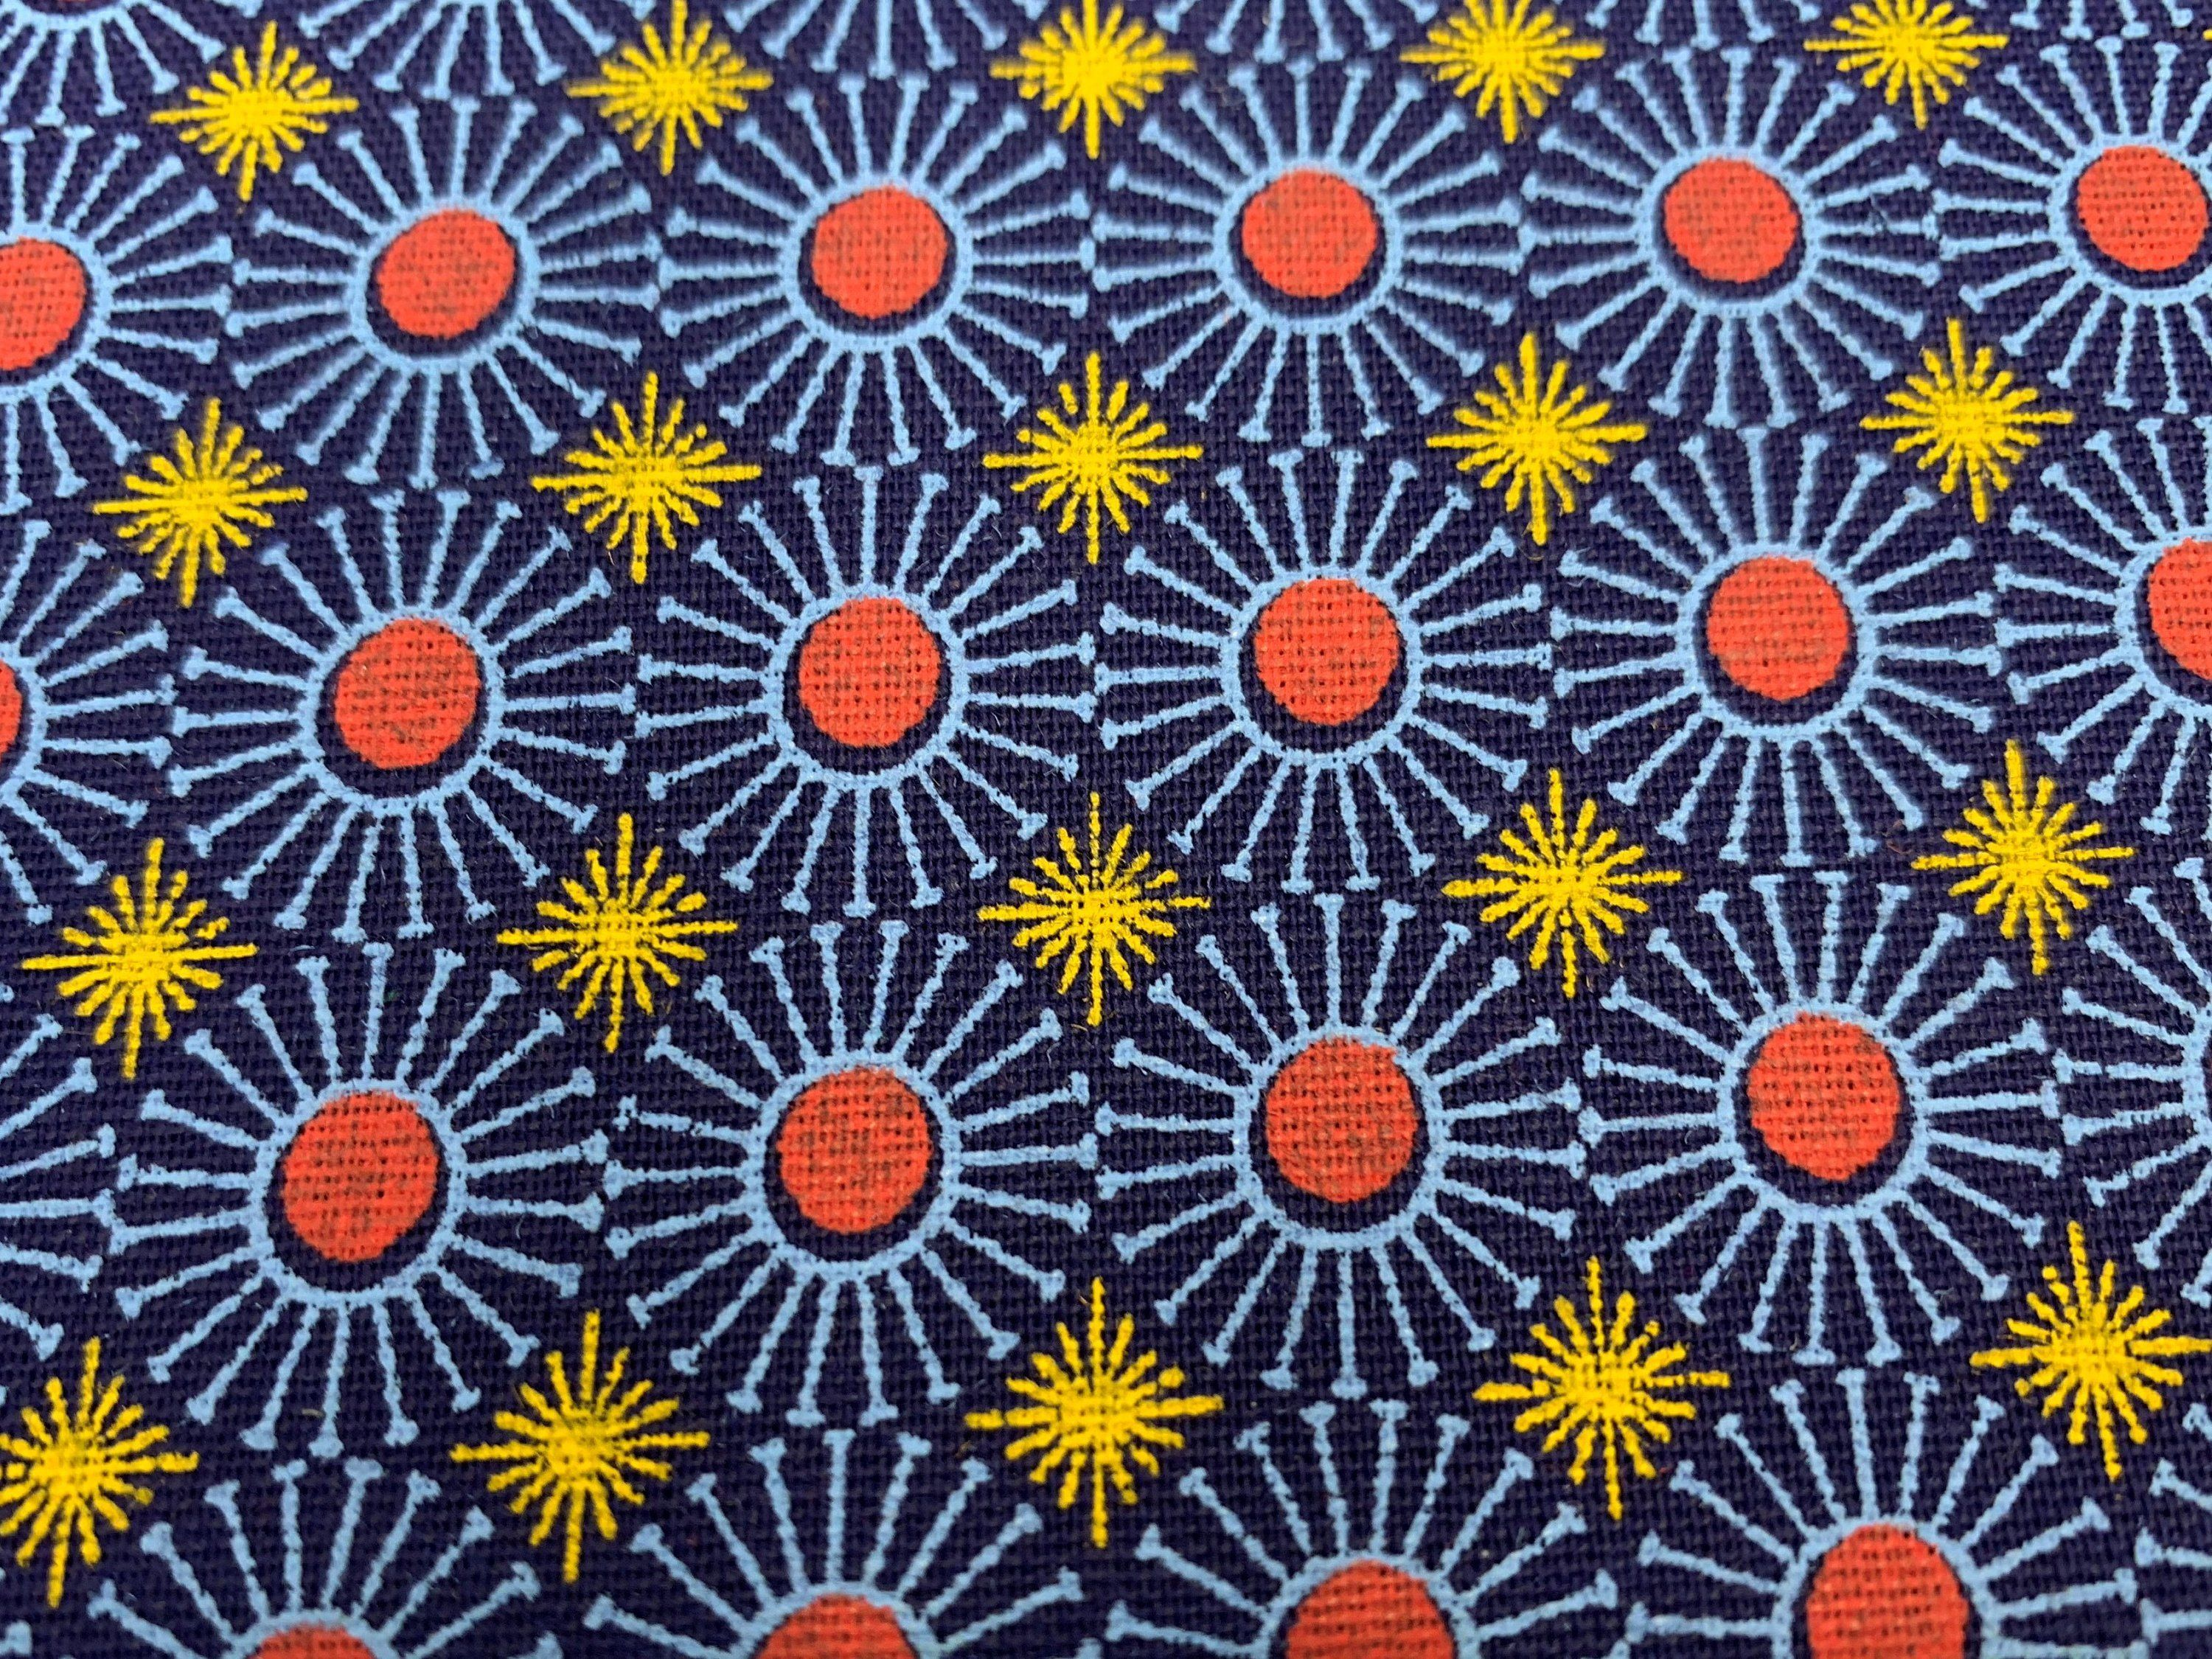 70d16887032 South African Shweshwe Fabric by the HALF YARD. DaGama Three Cats Royal  Blue Sunny Tiles. Cotton Fabric for Quilting